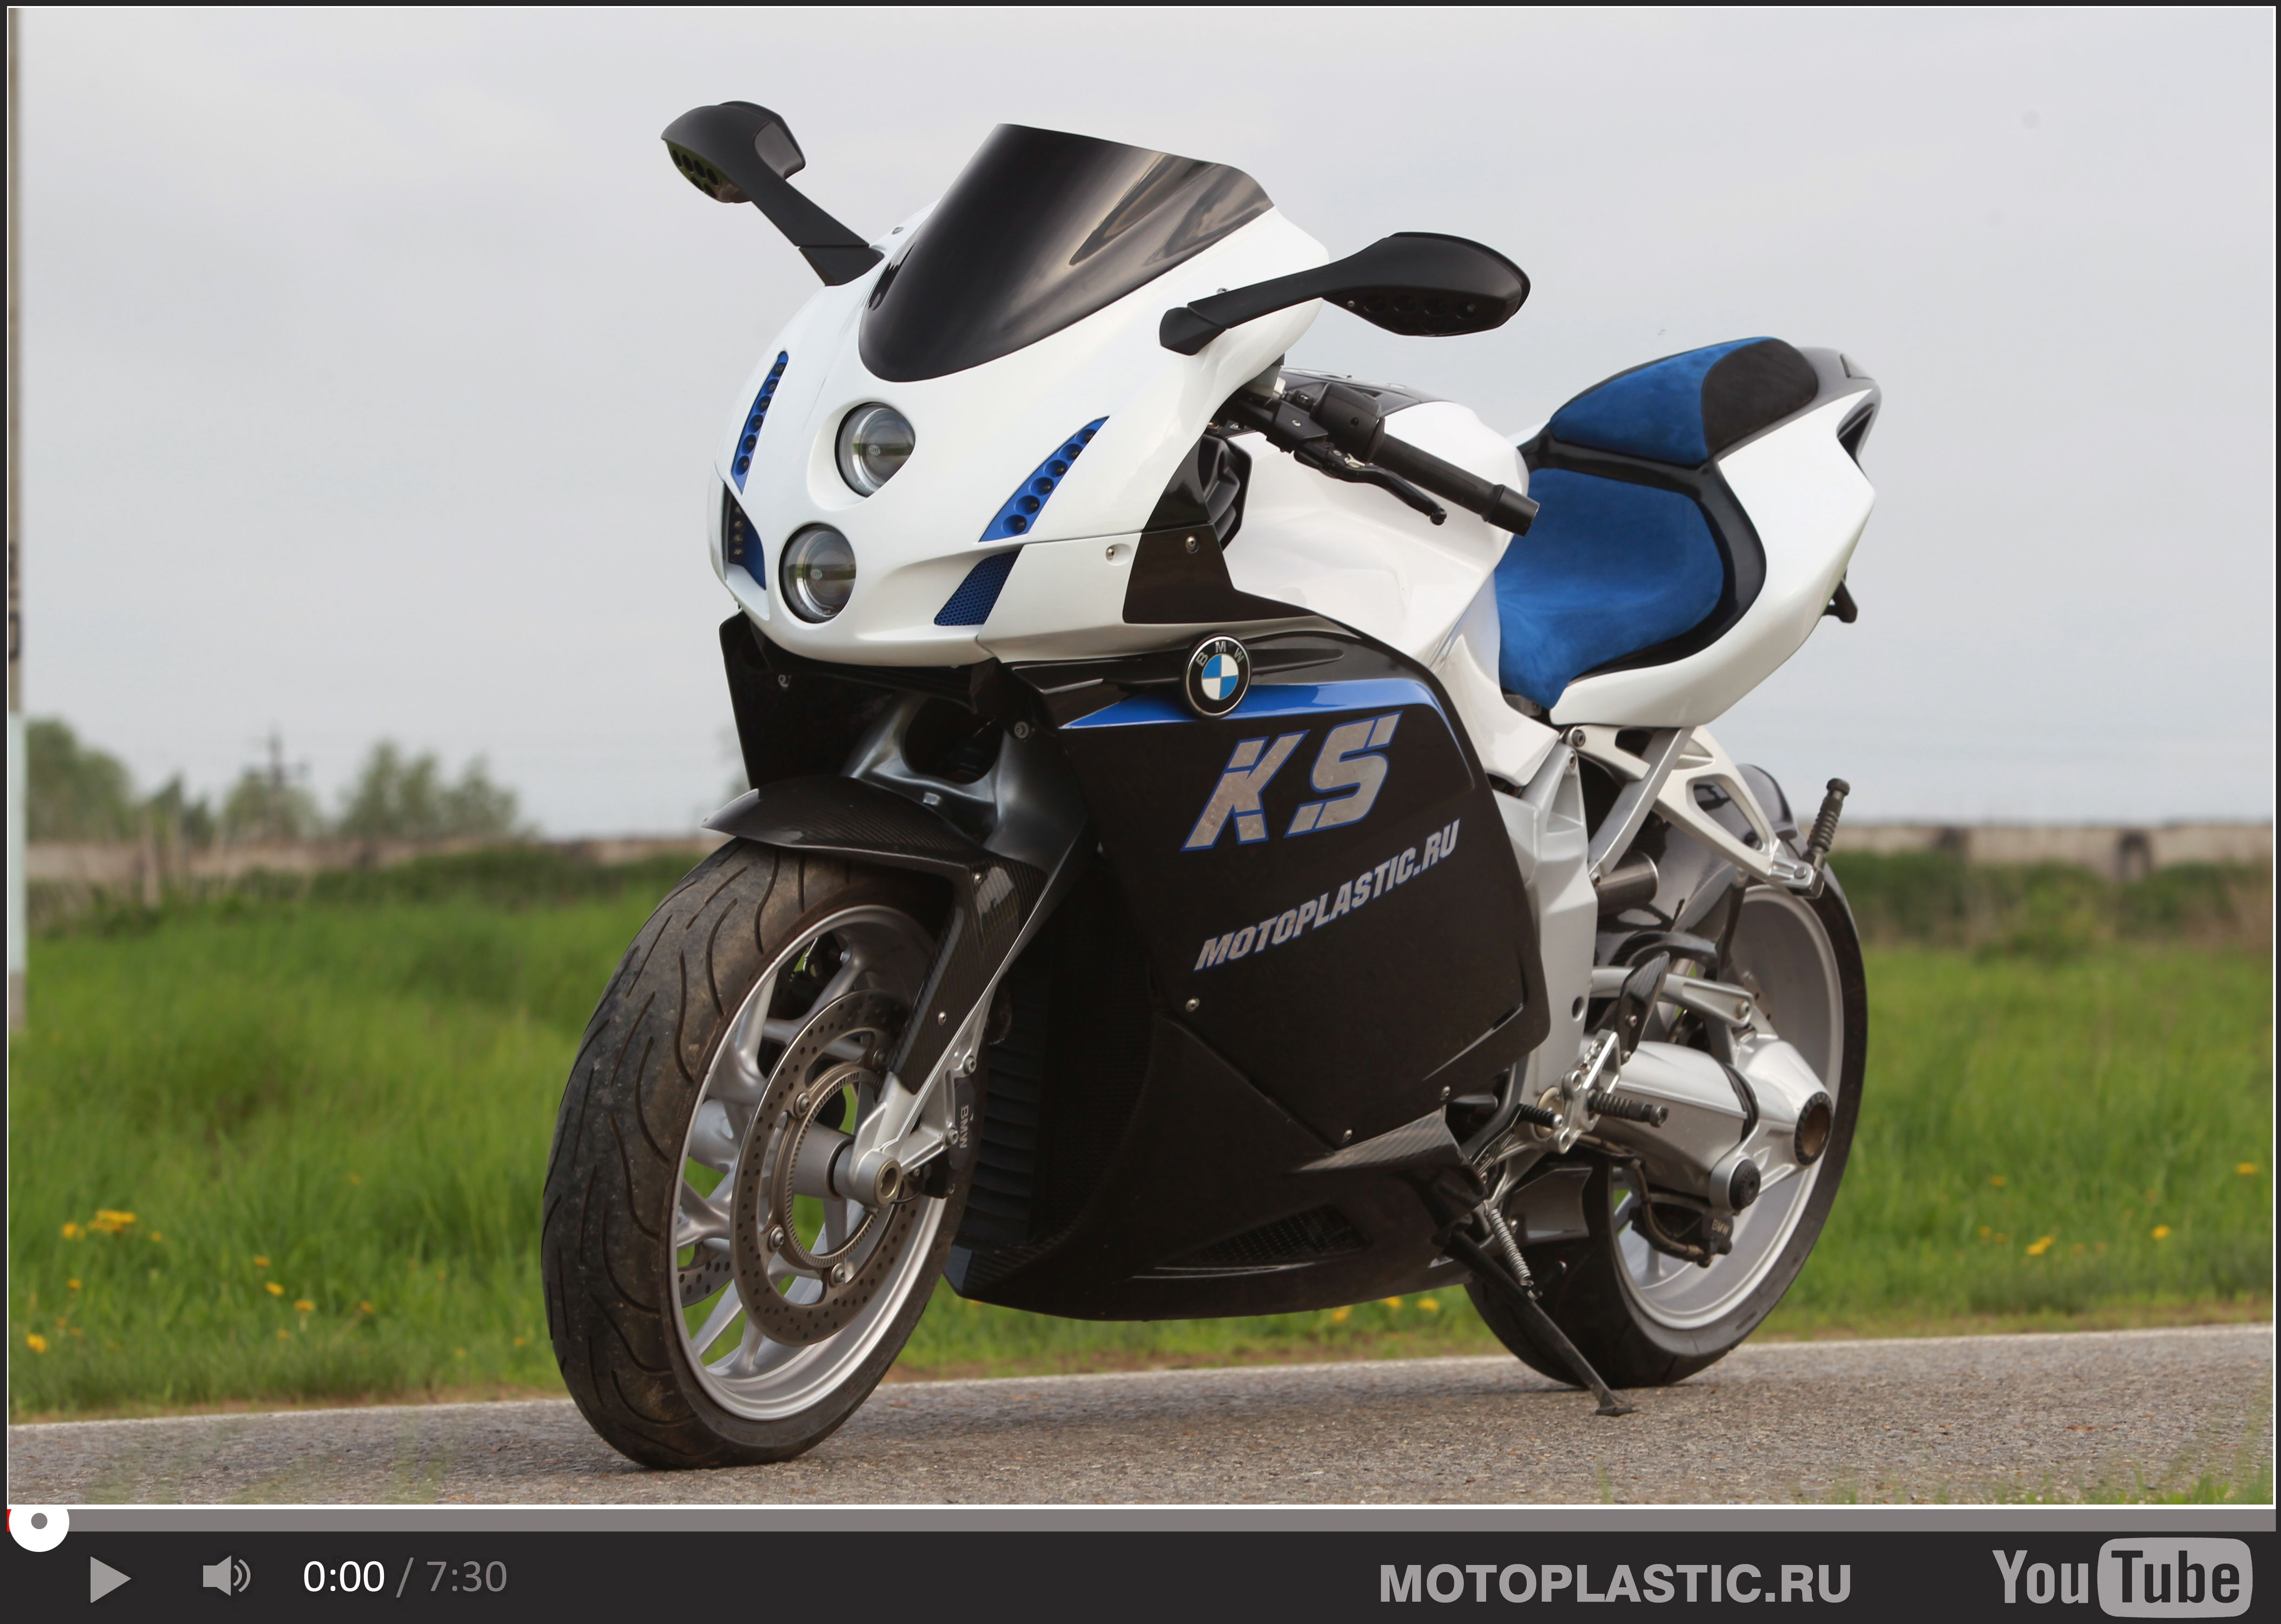 bmw k 1300 s , tuning , custom front fairing and tail | bmw k 1200